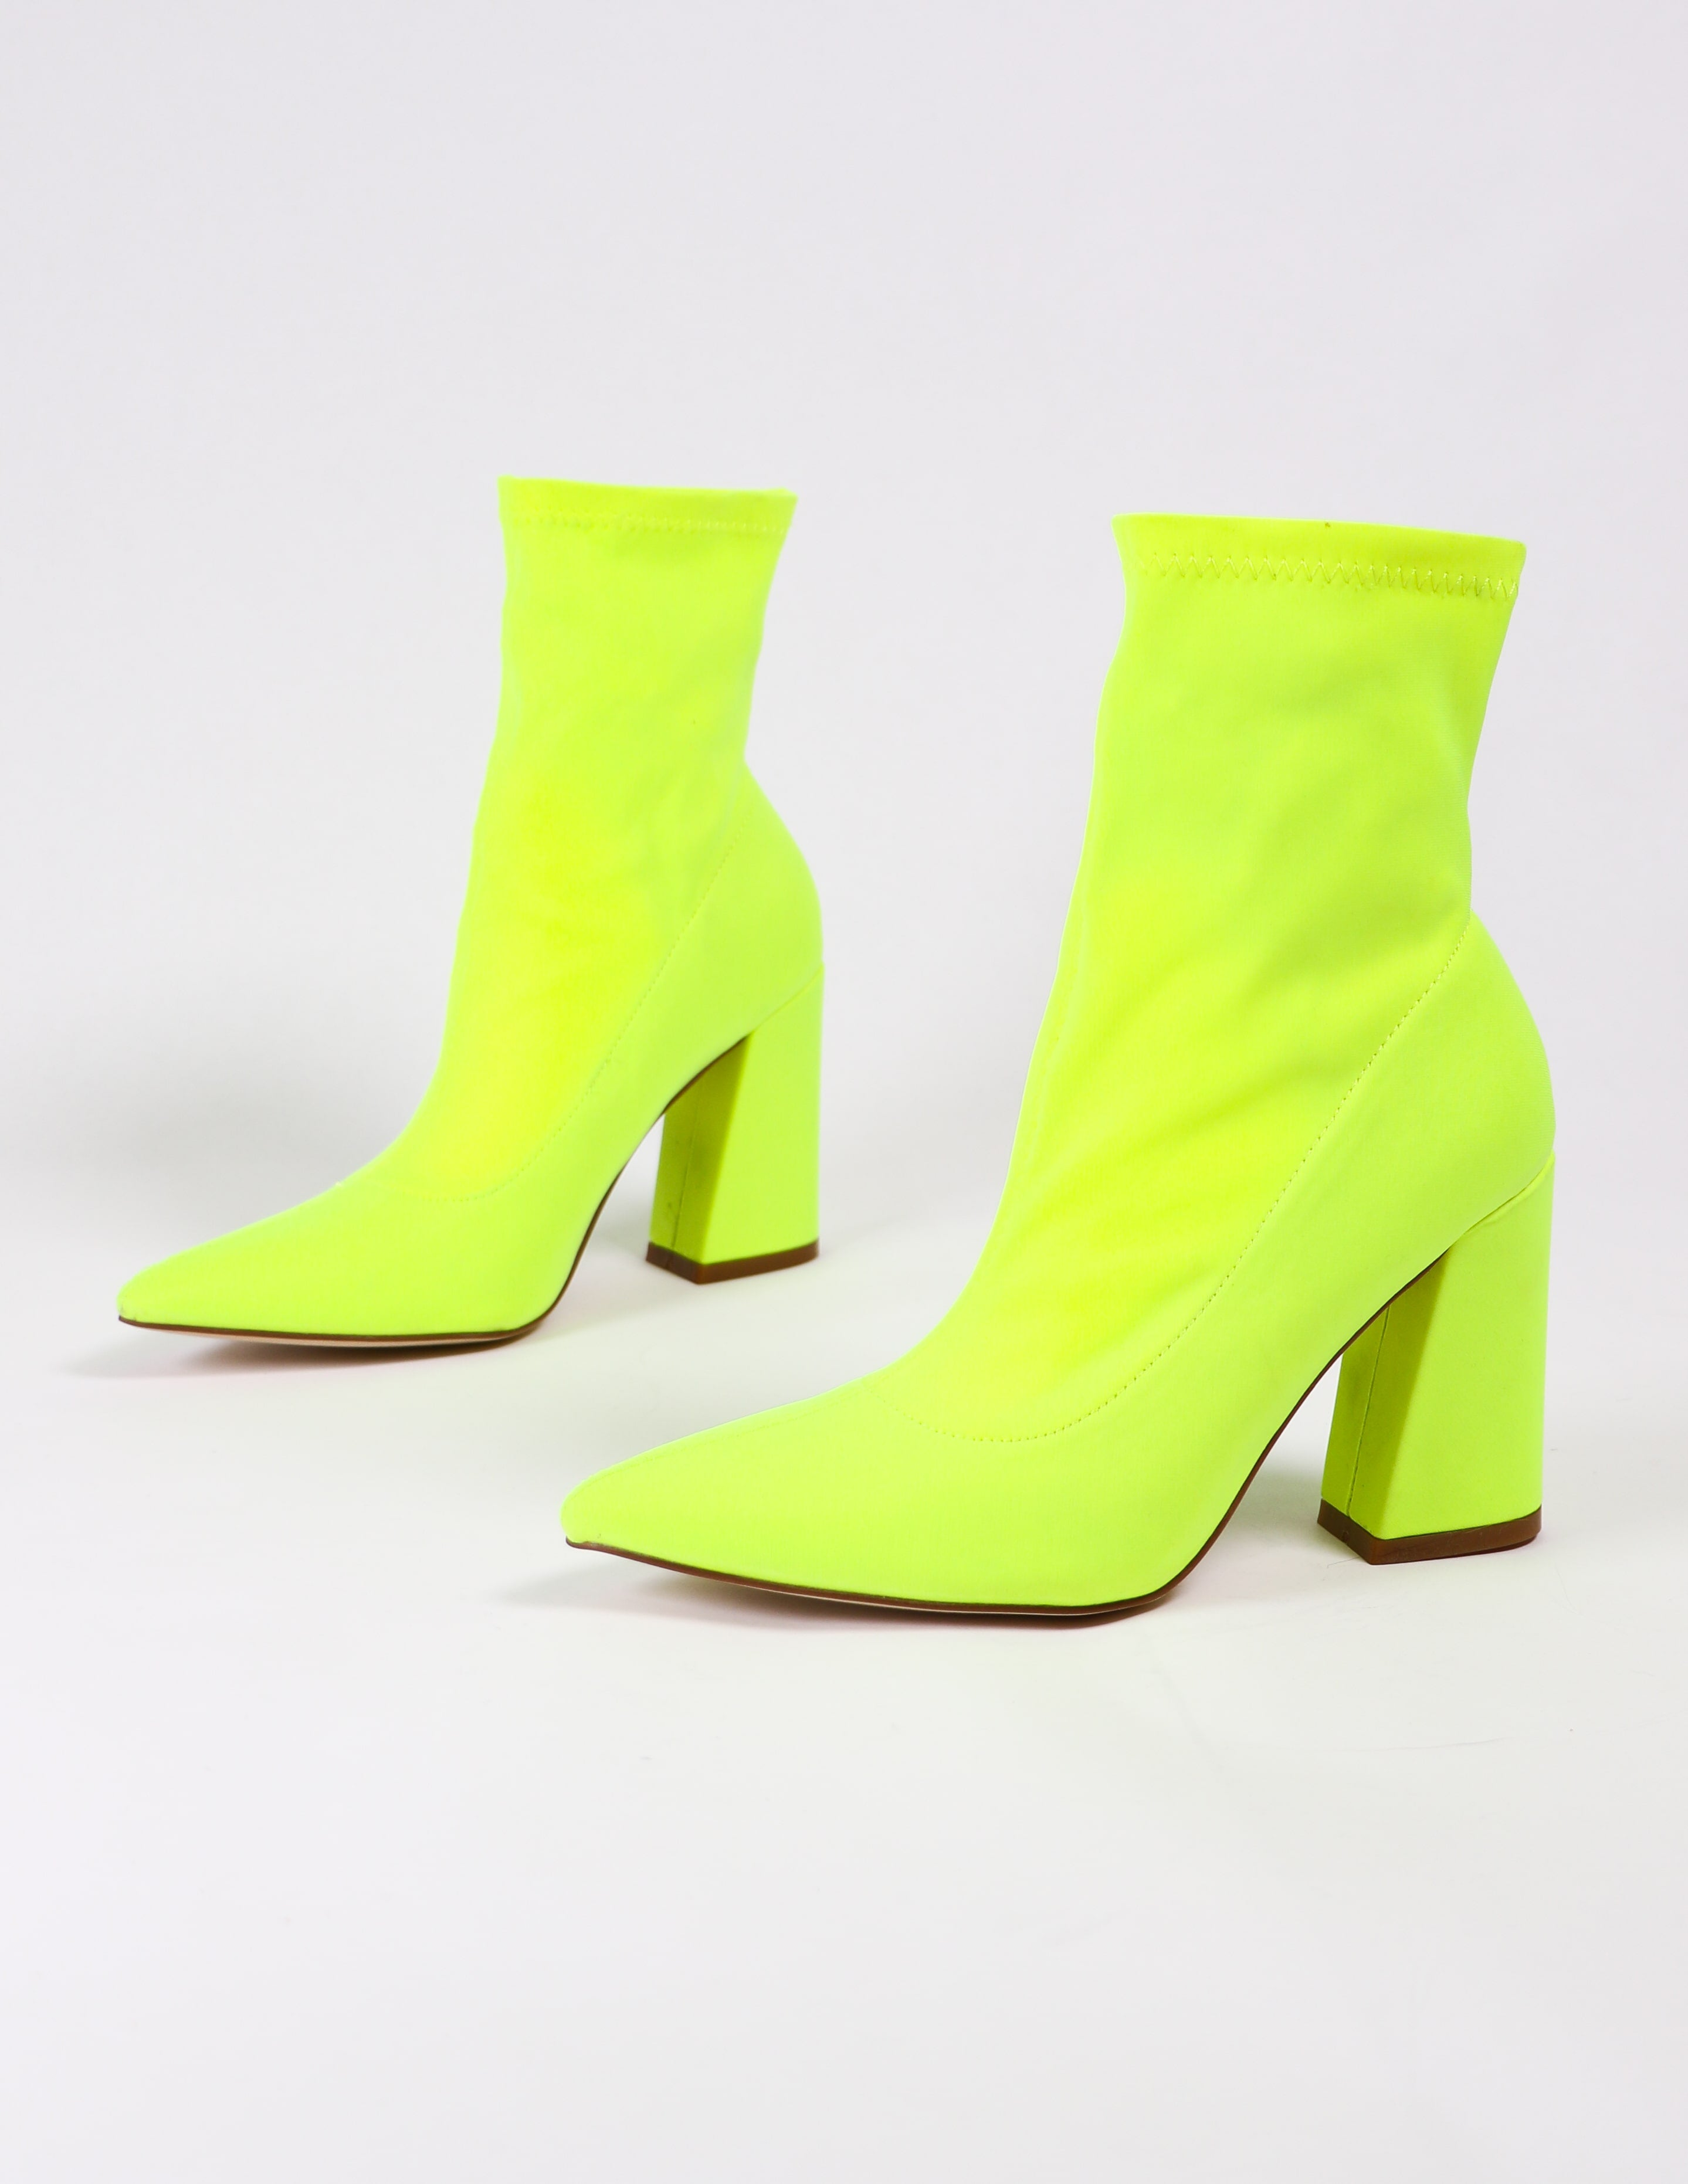 lime green highlight of my life bootie on white background